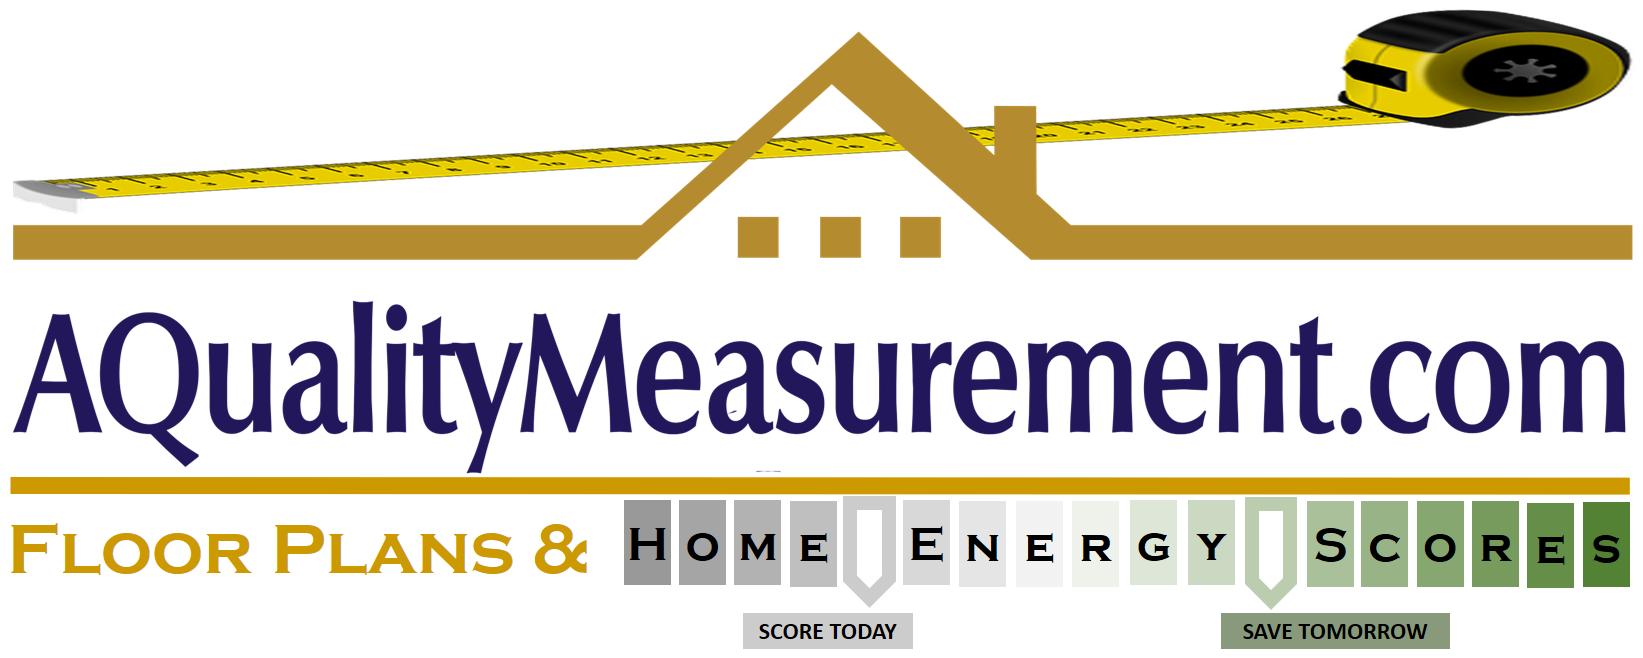 we are independent do not subcontract and have no agenda to sell home energy improvements we offer same day delivery easy online scheduling low prices - Energy Independent Home Plans